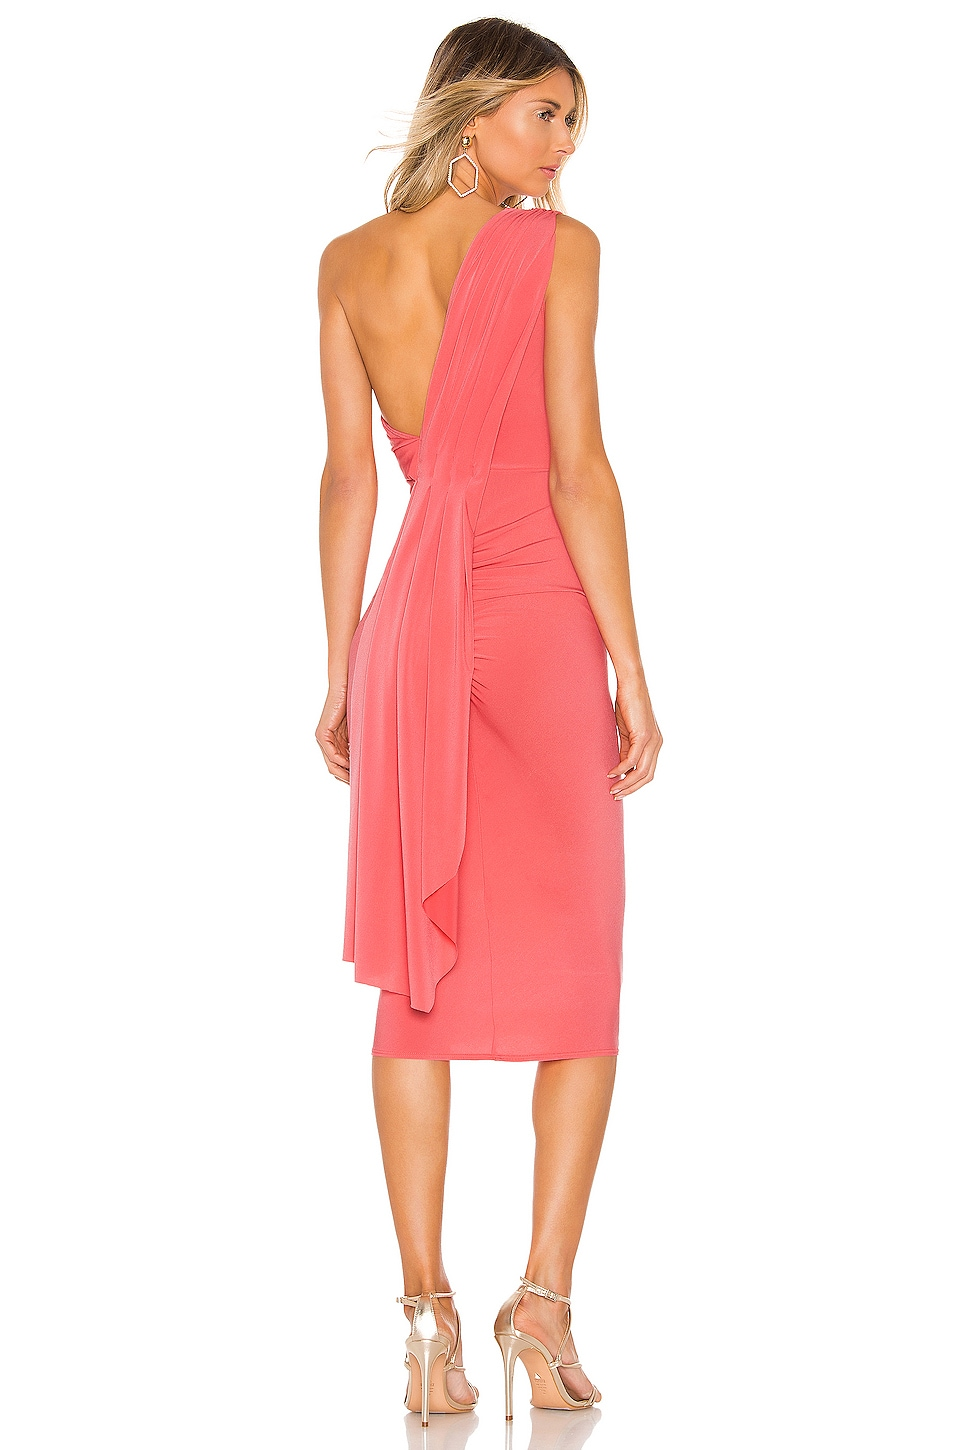 X Grace Kong Dress                   Katie May                                                                                                                                                     Sale price:                                                                        CA$ 160.85                                                                                                  Previous price:                                                                       CA$ 307.32 2